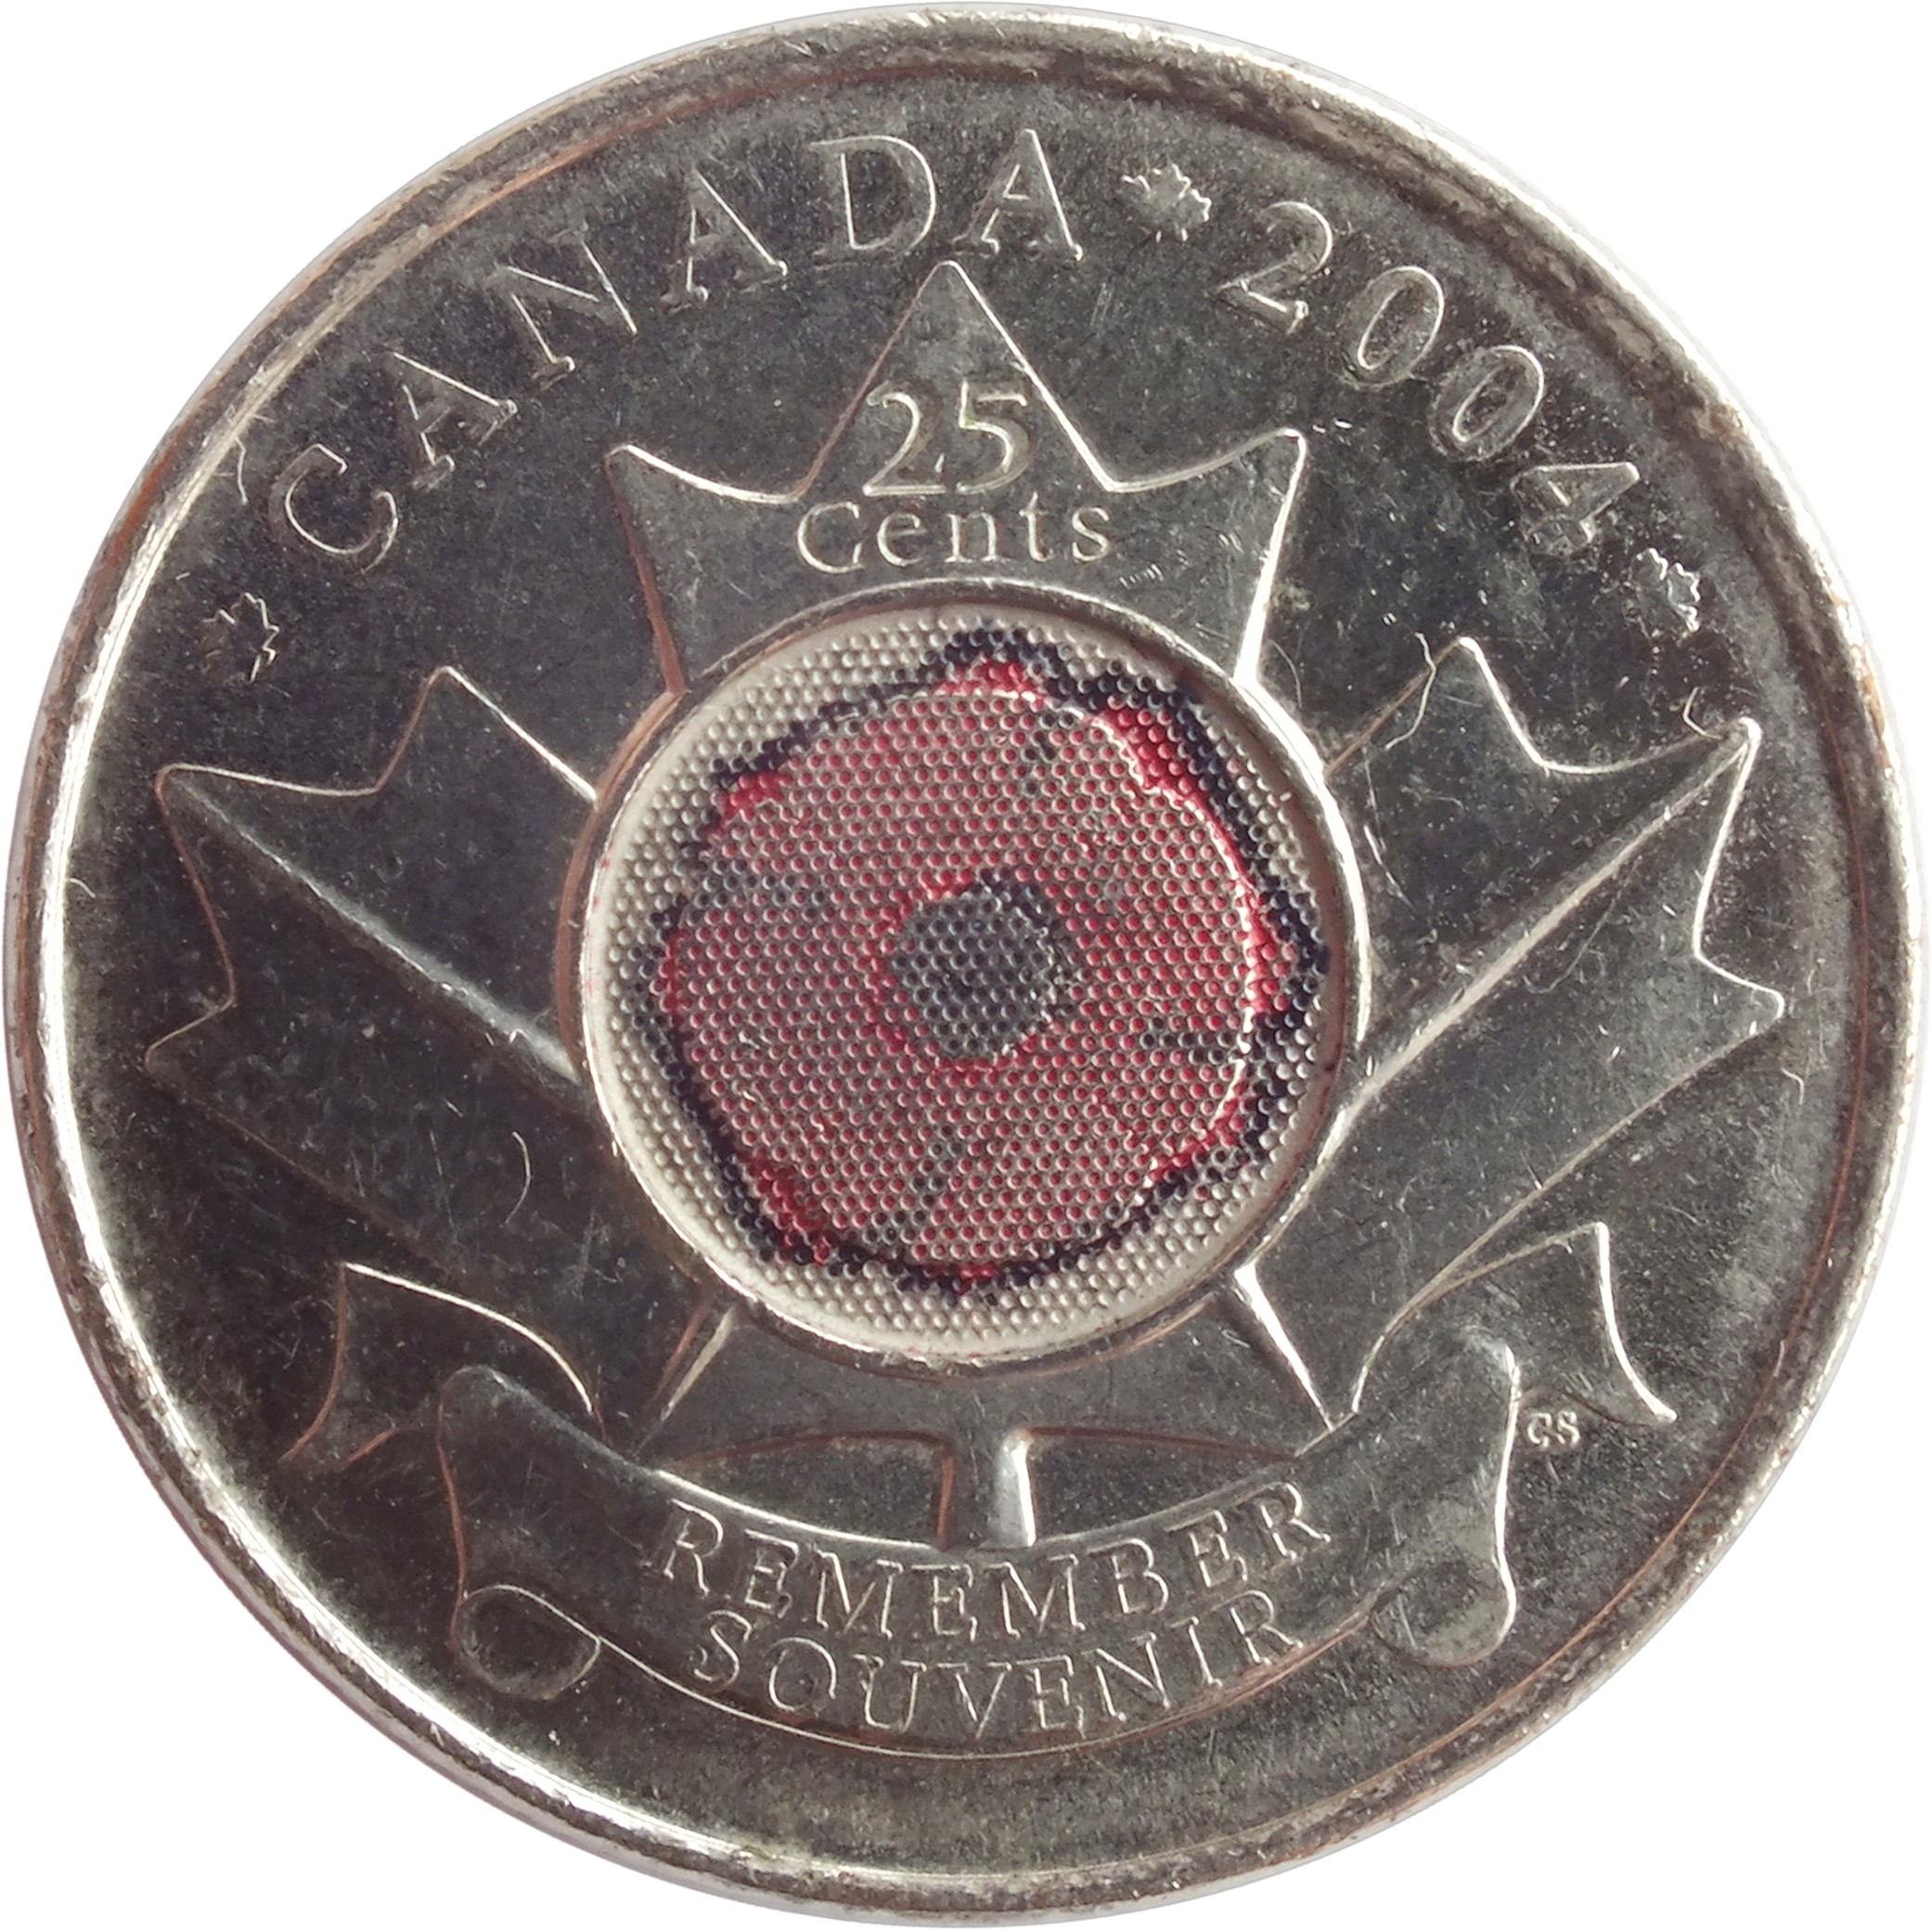 25 Cents Elizabeth Ii Remembrance Day 2004 Canada Km 510 Coinsbook